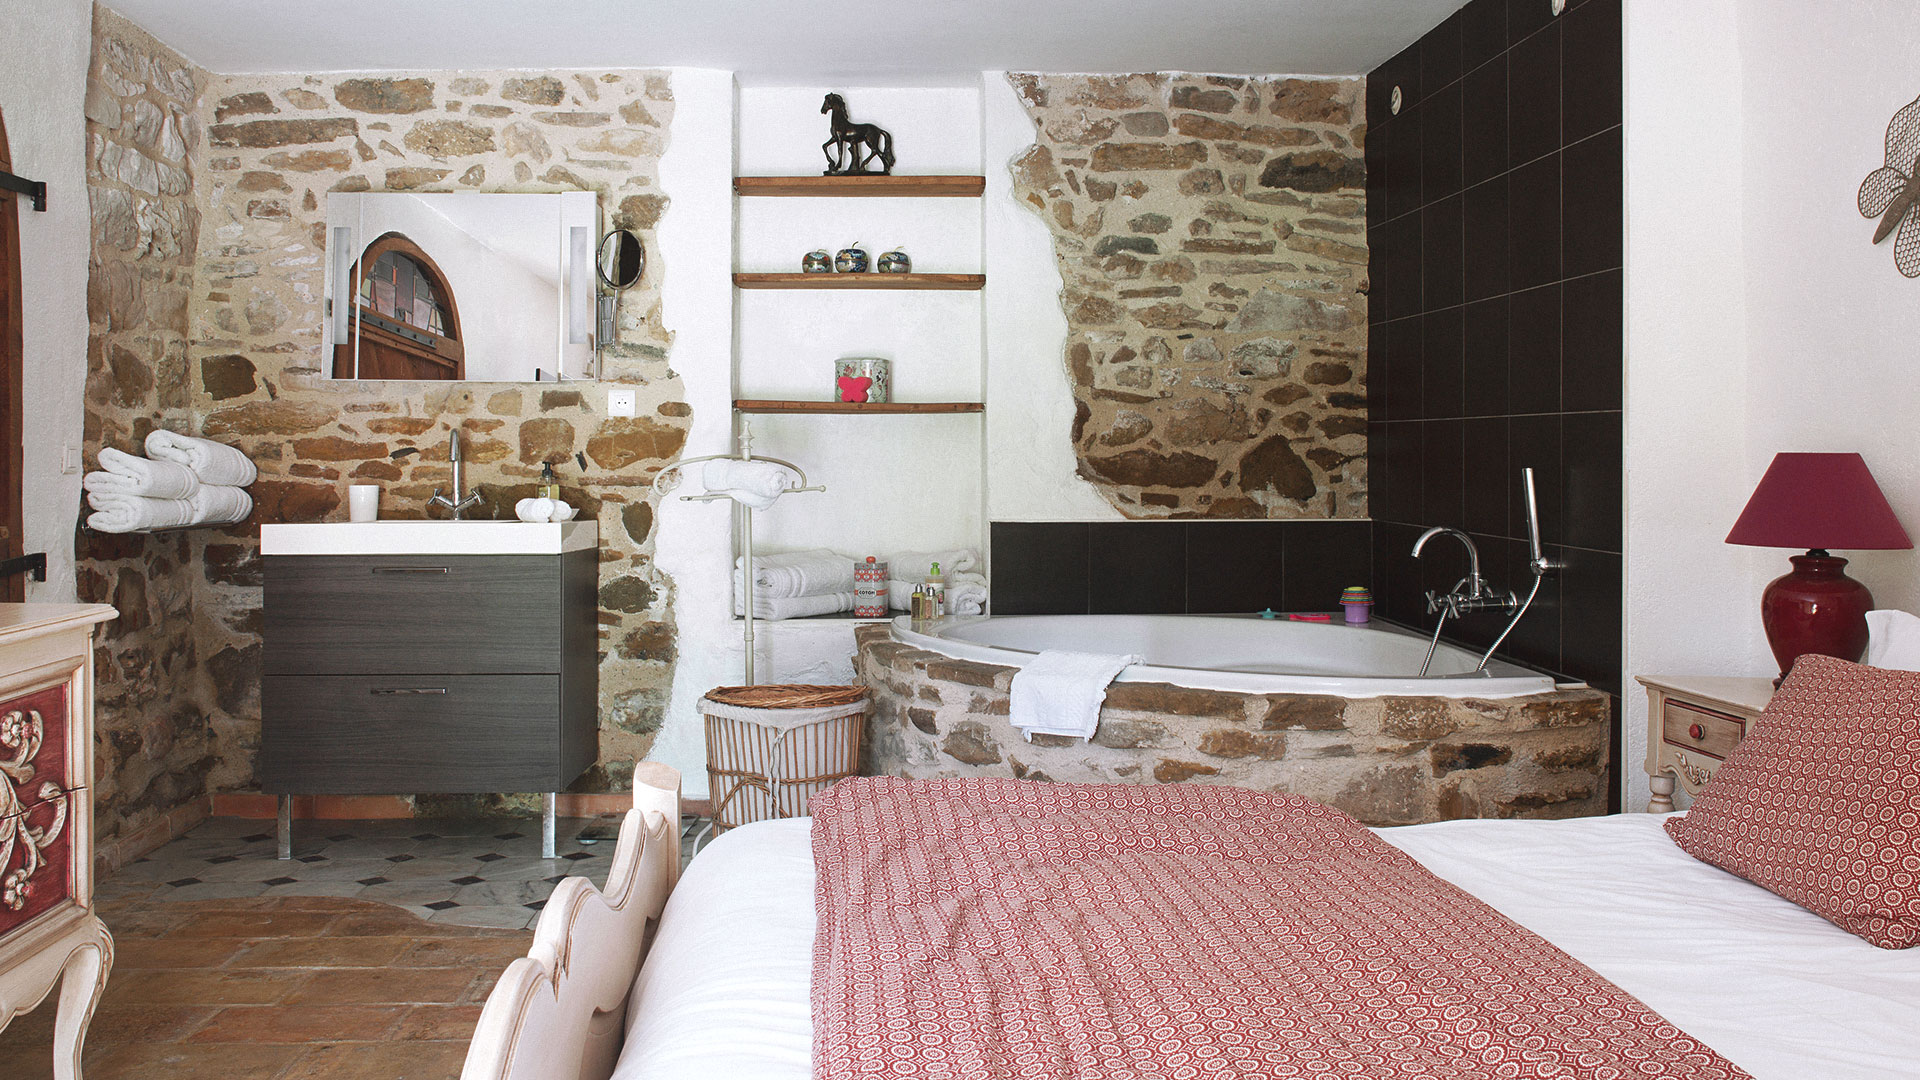 Parents bedroom with open bathroom in luxury resort south of france